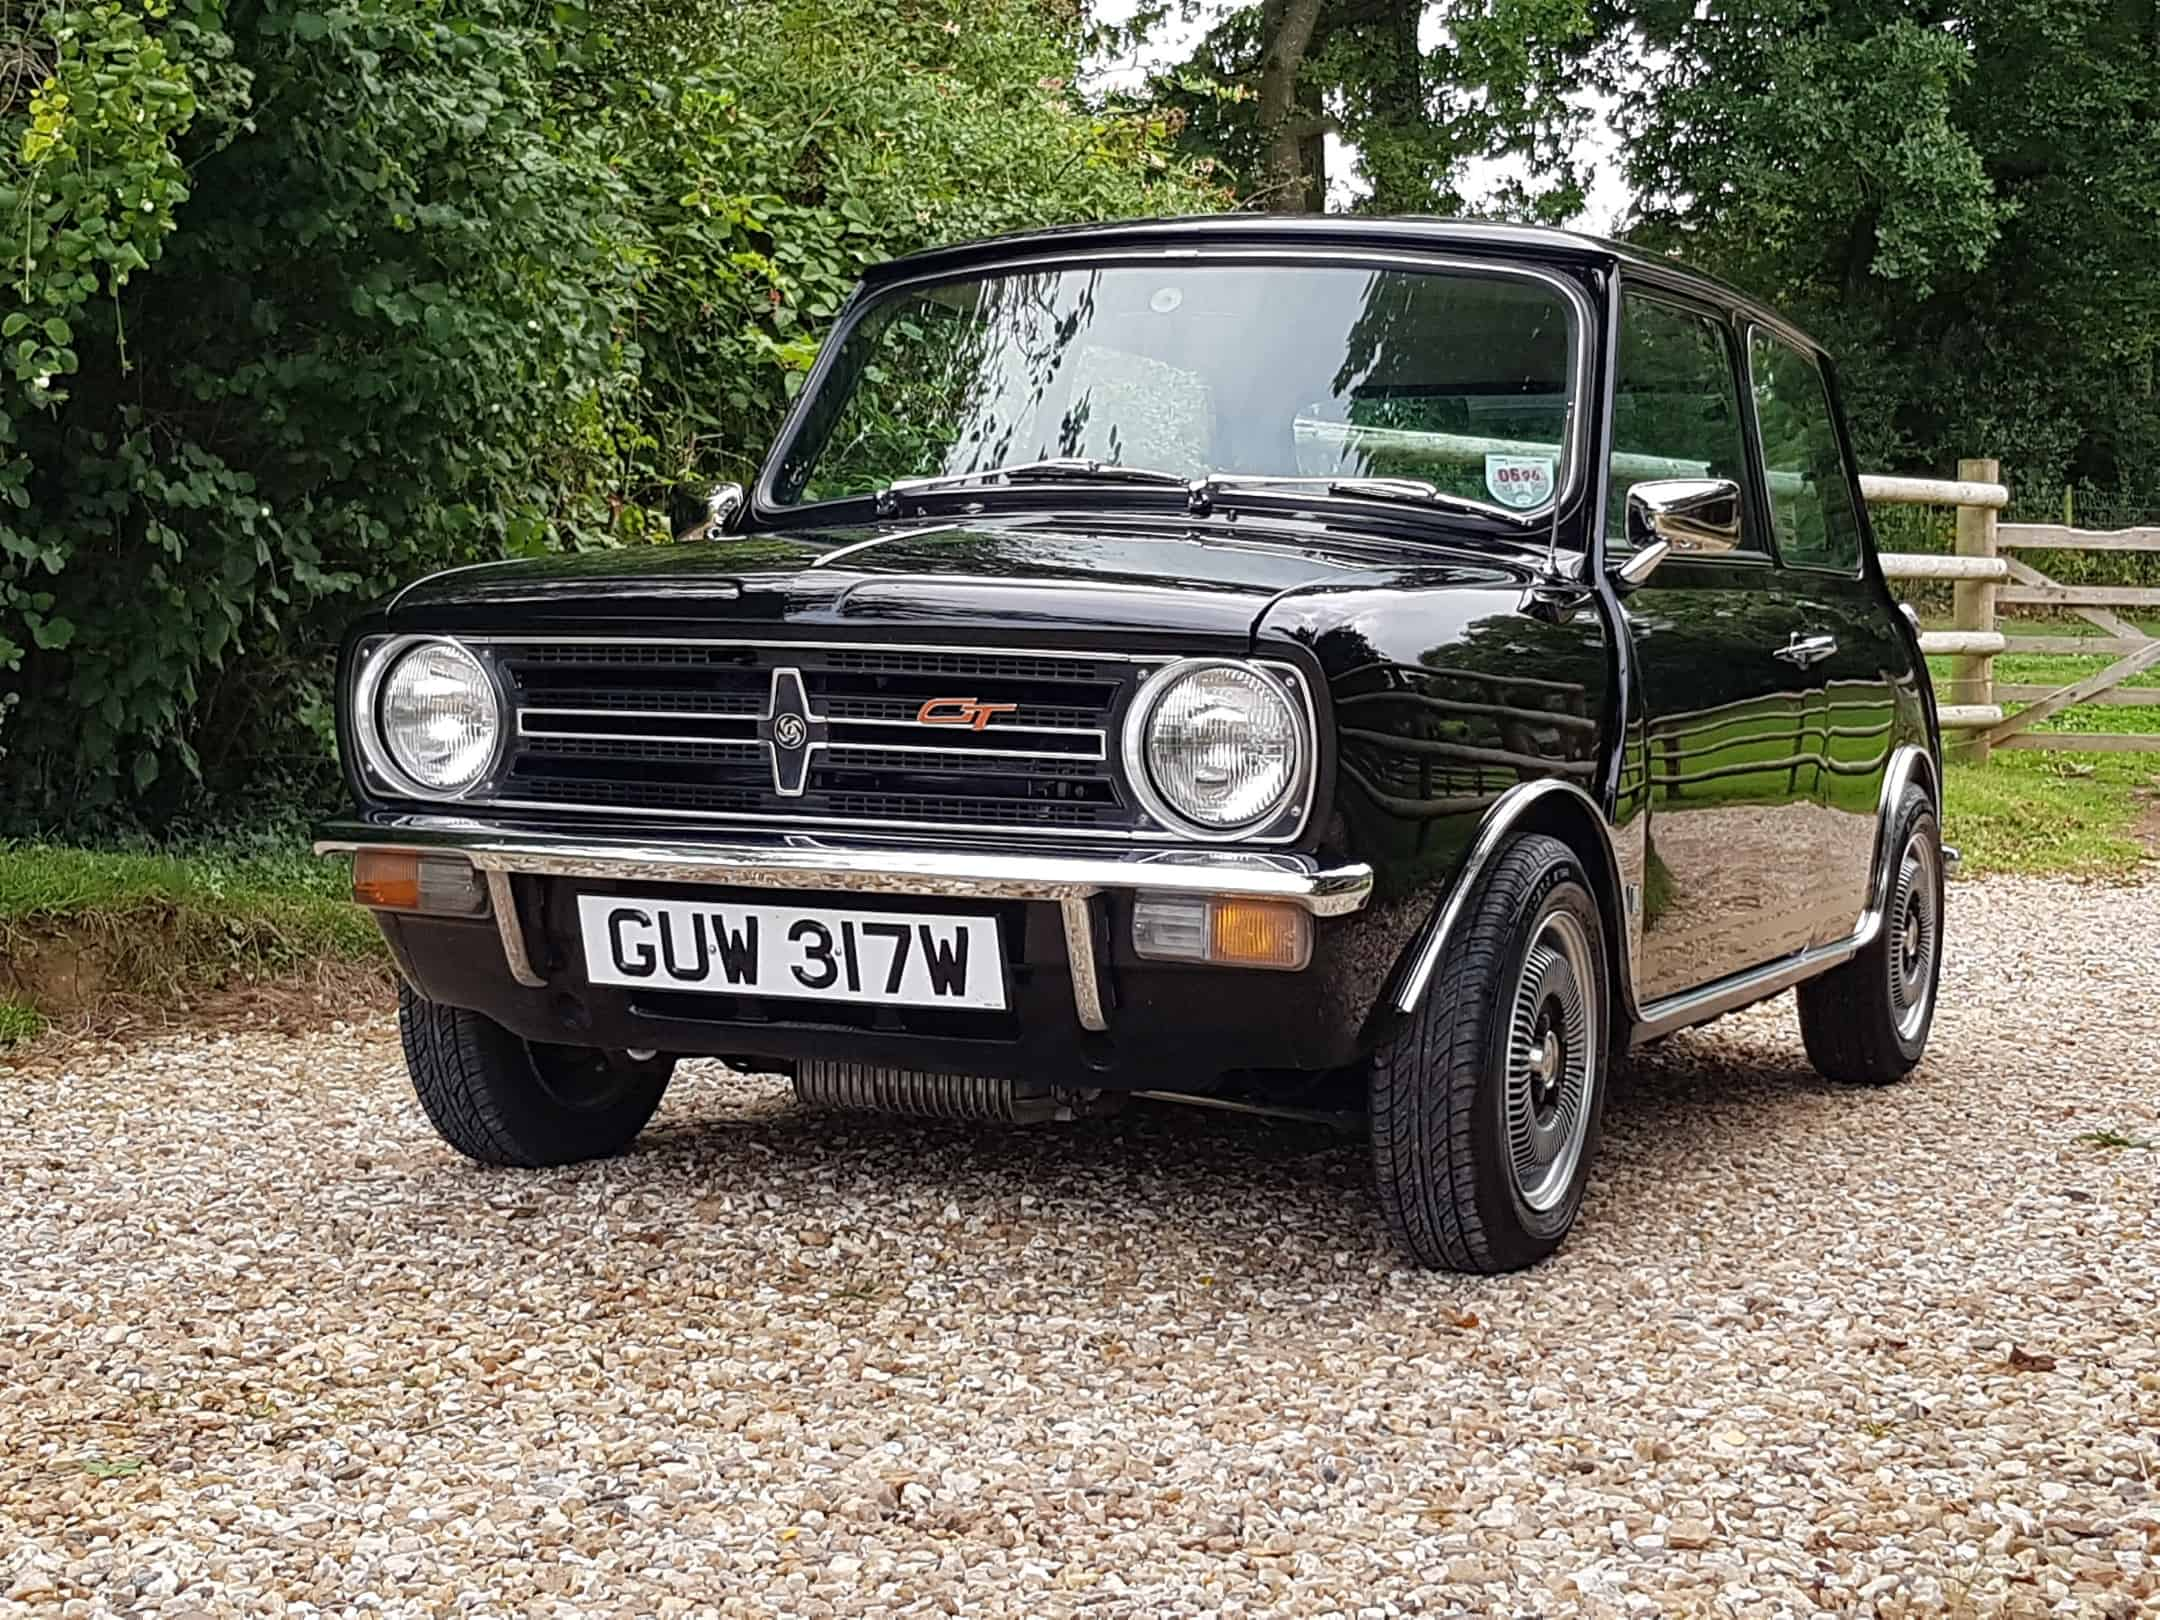 ** NOW SOLD ** Outstanding 1275 GT In Black With Gold Stripes!